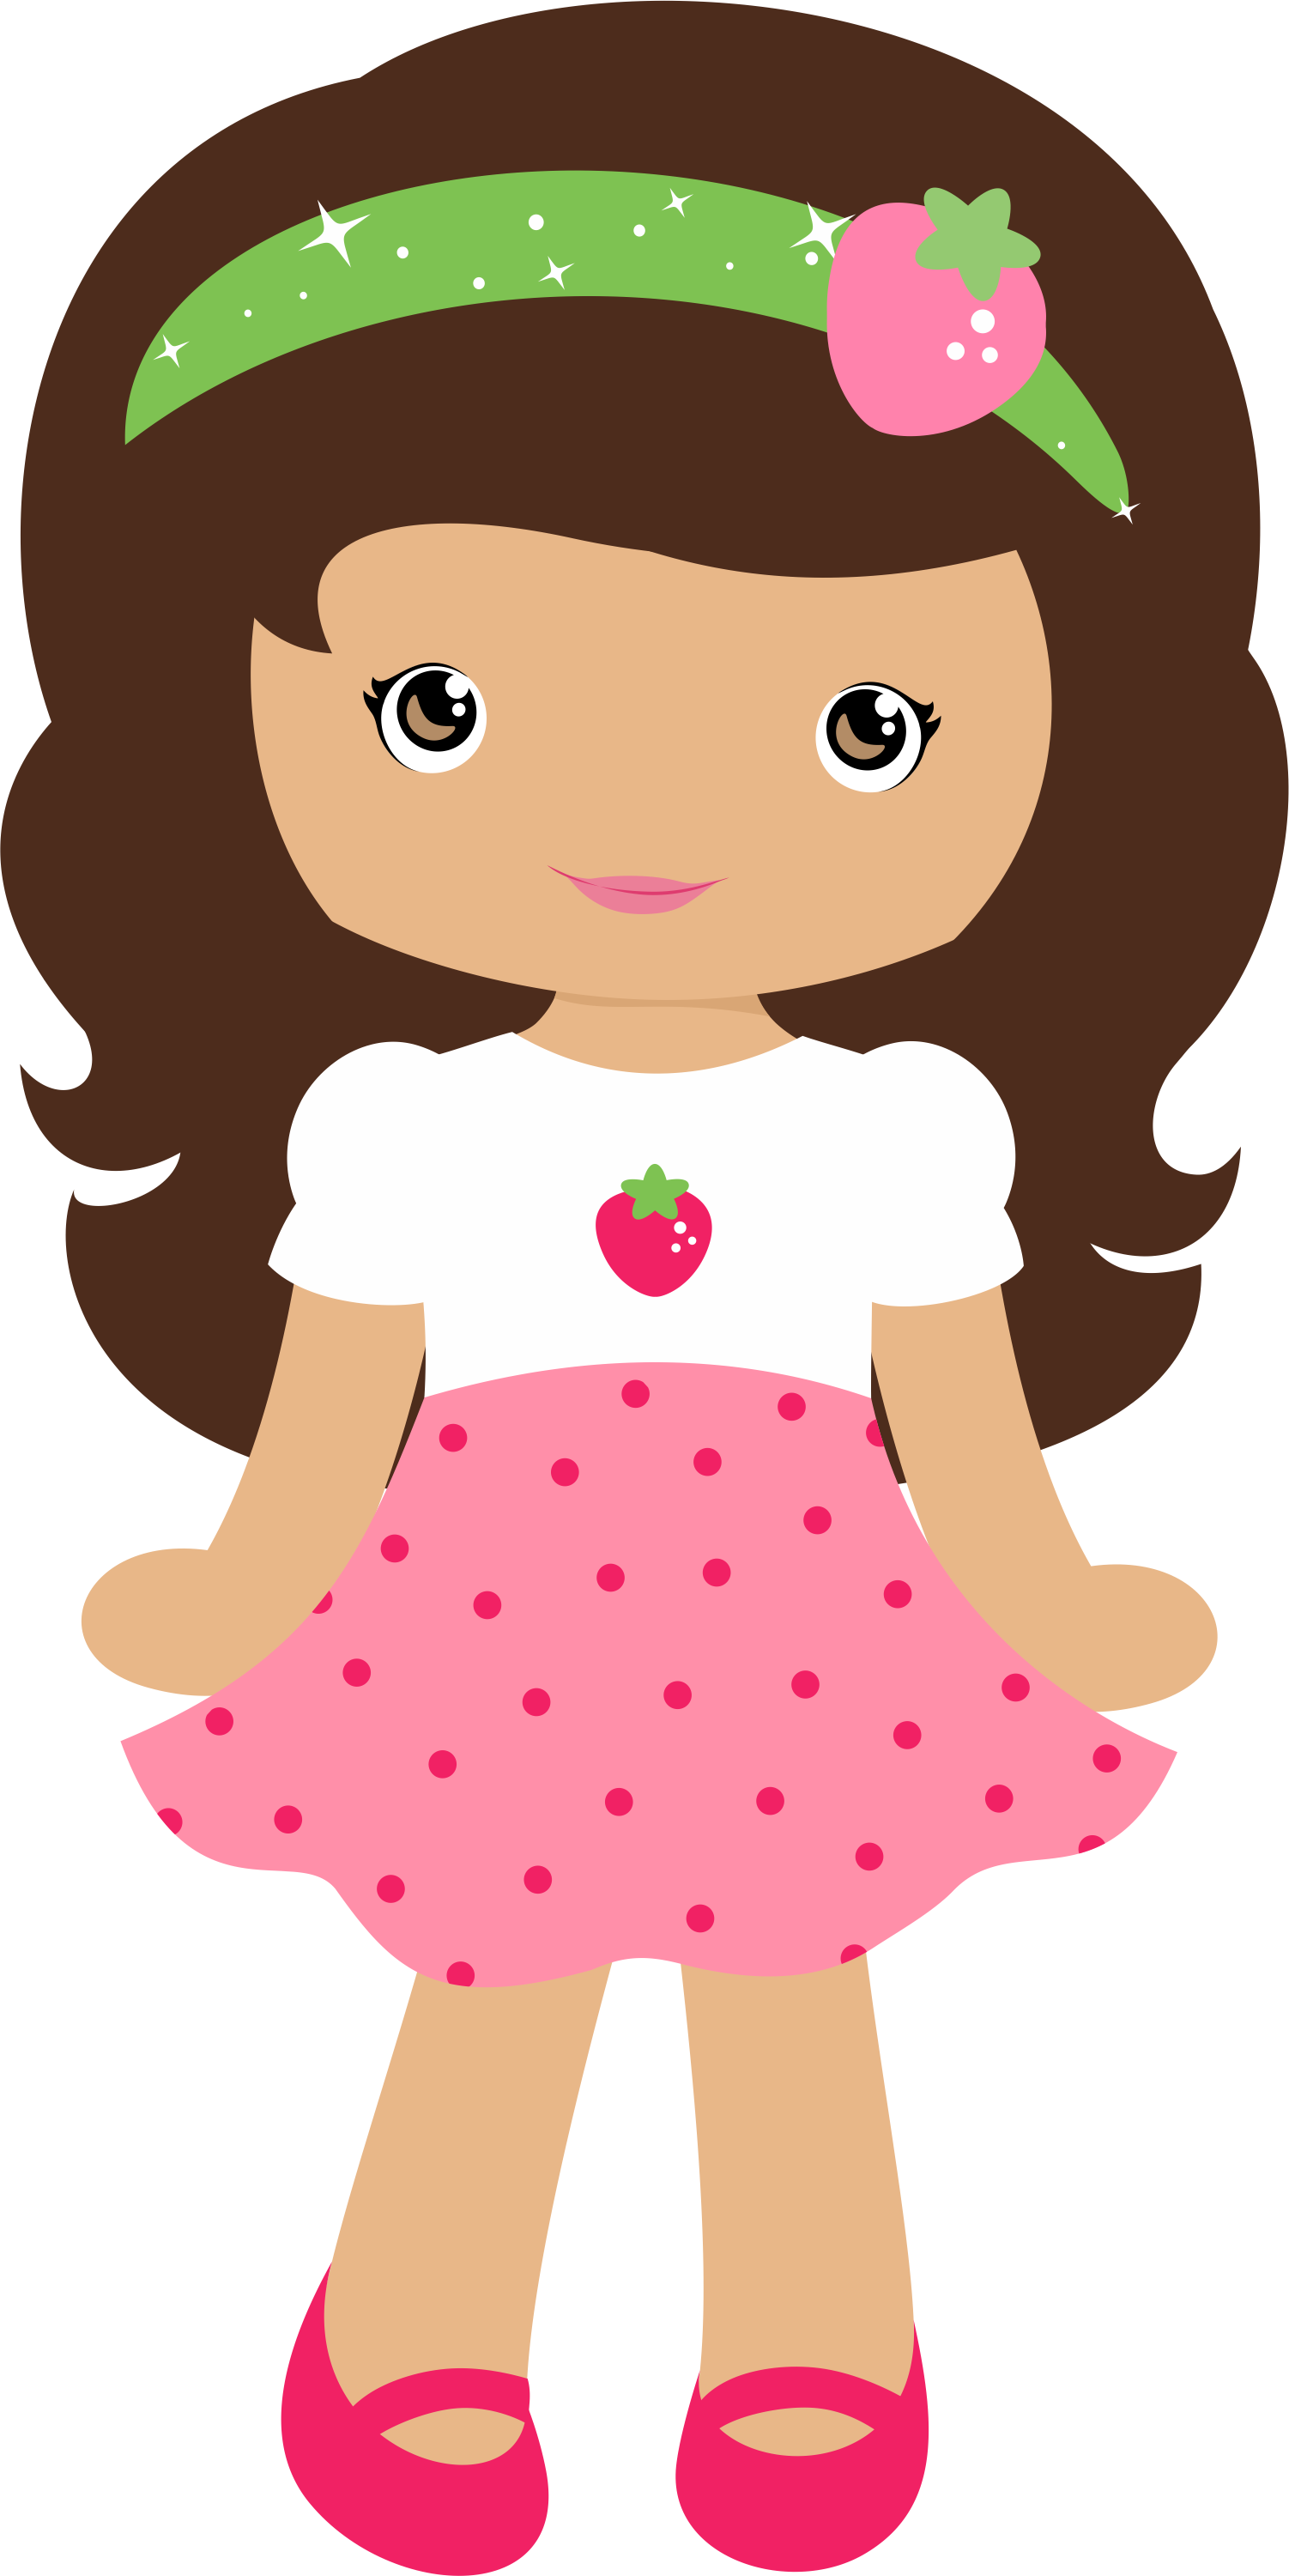 Cabbage patch baby birthday clipart png. Moranguinho grafos strawberrygirl minus